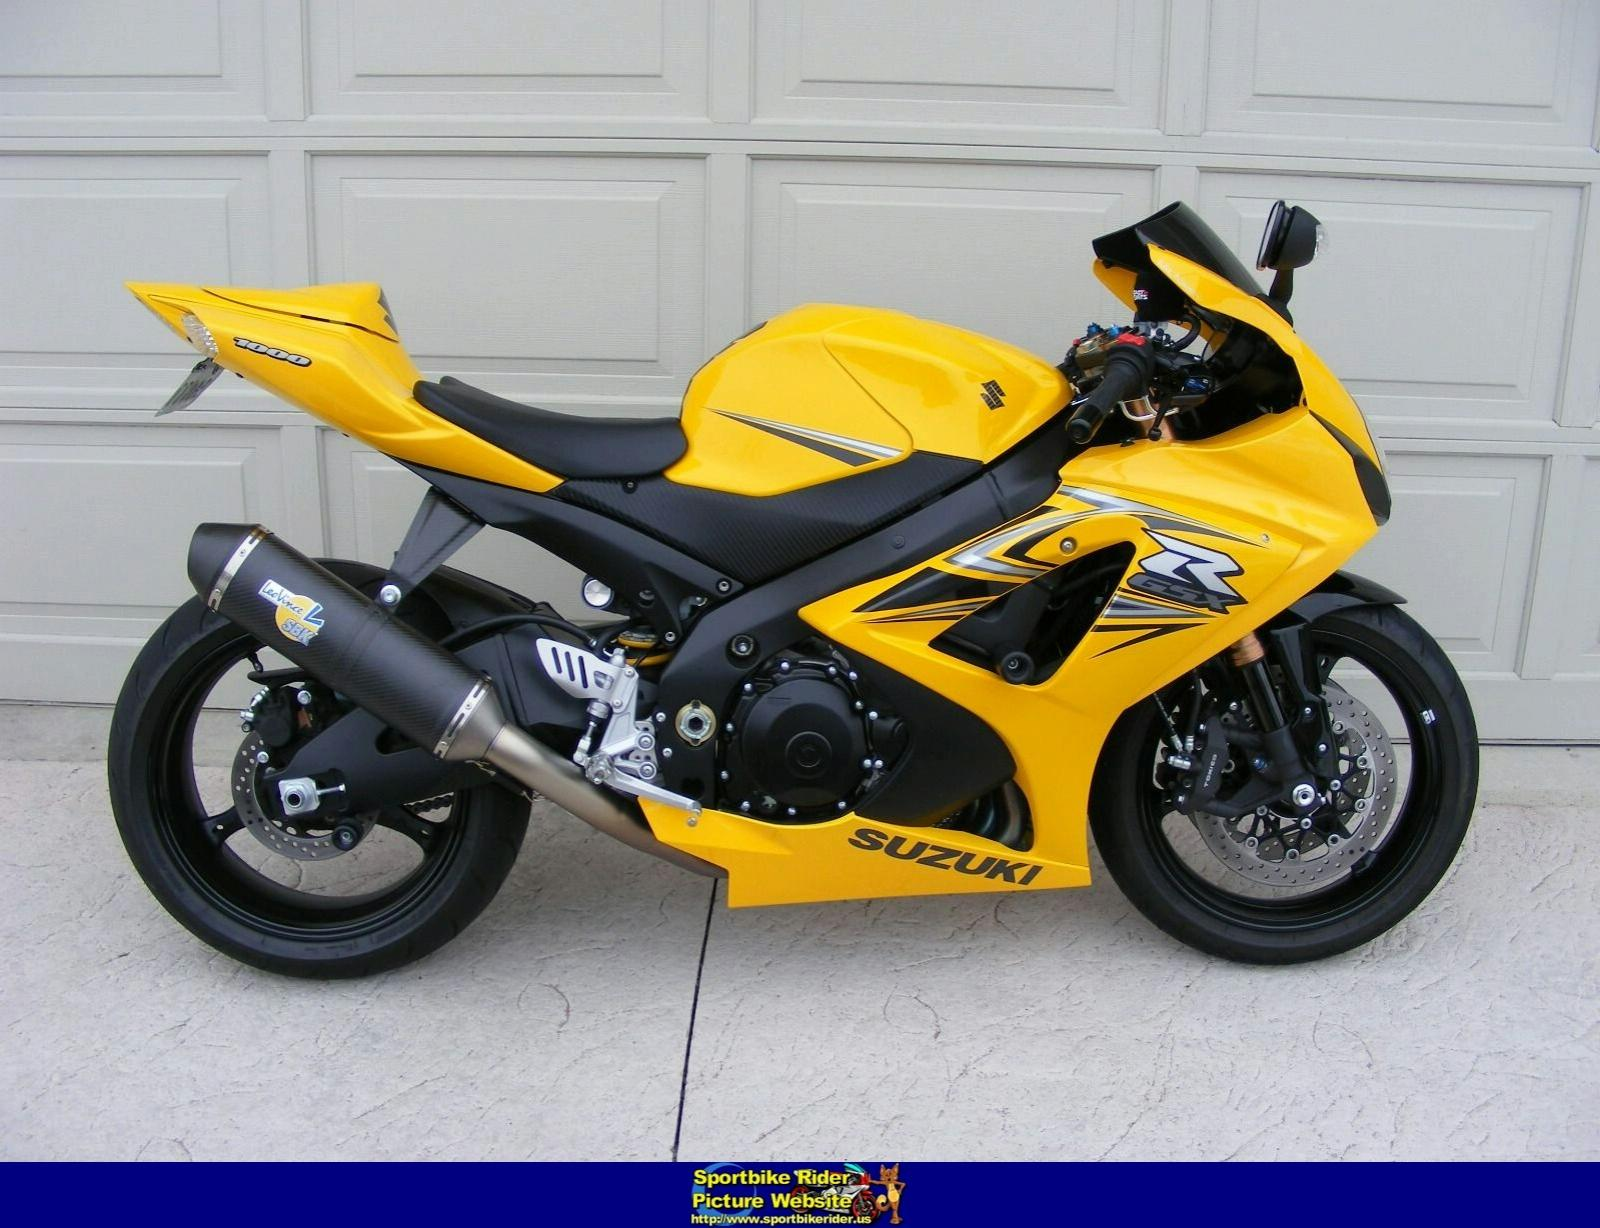 2007 suzuki gsx r 1000 moto zombdrive com. Black Bedroom Furniture Sets. Home Design Ideas